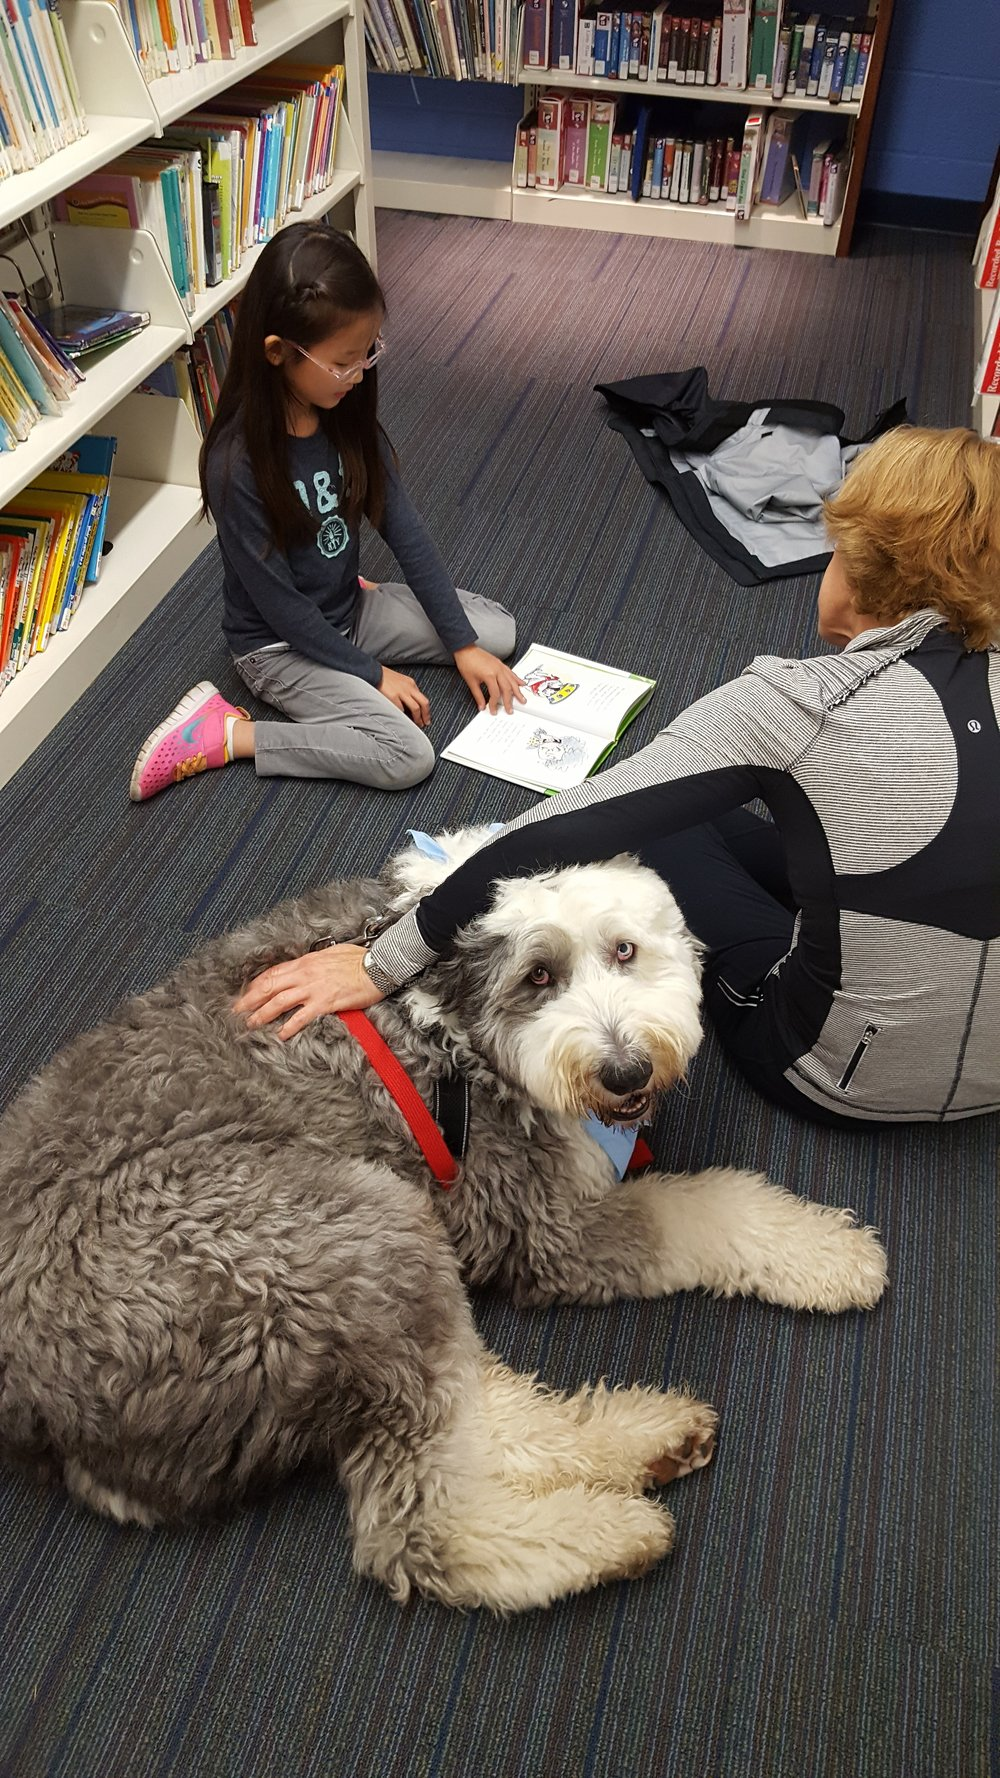 Sign up with READ to DOGS for a chance to read to Cooper or one of our other lovable canine volunteers.